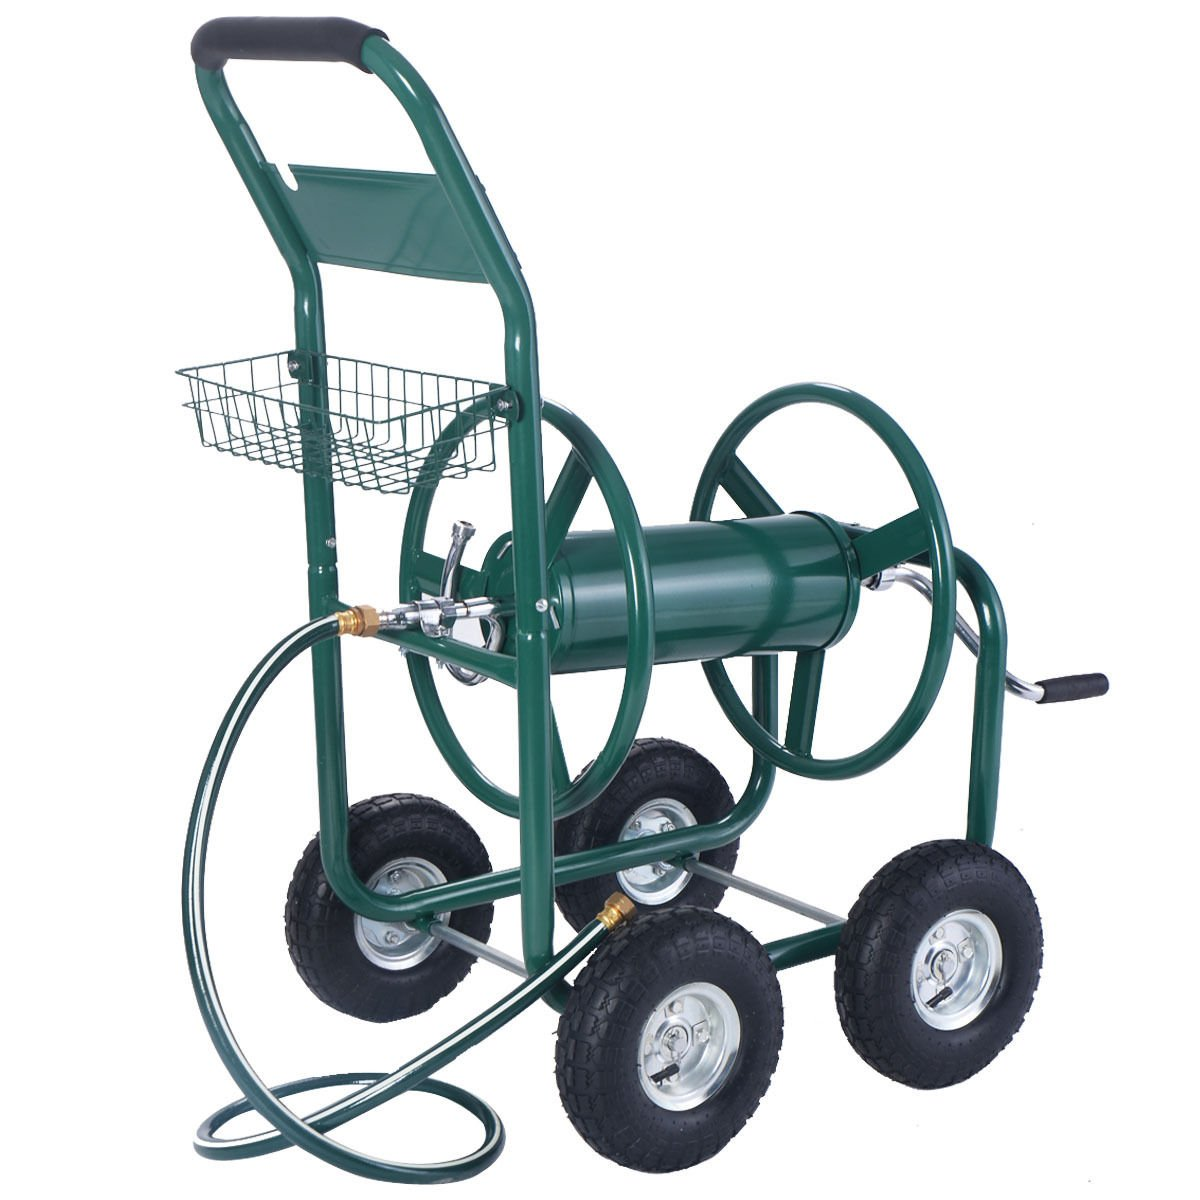 Wakrays Garden Water Hose Reel Cart 300FT Outdoor Heavy Duty Yard Planting W/Basket New by Wakrays (Image #3)